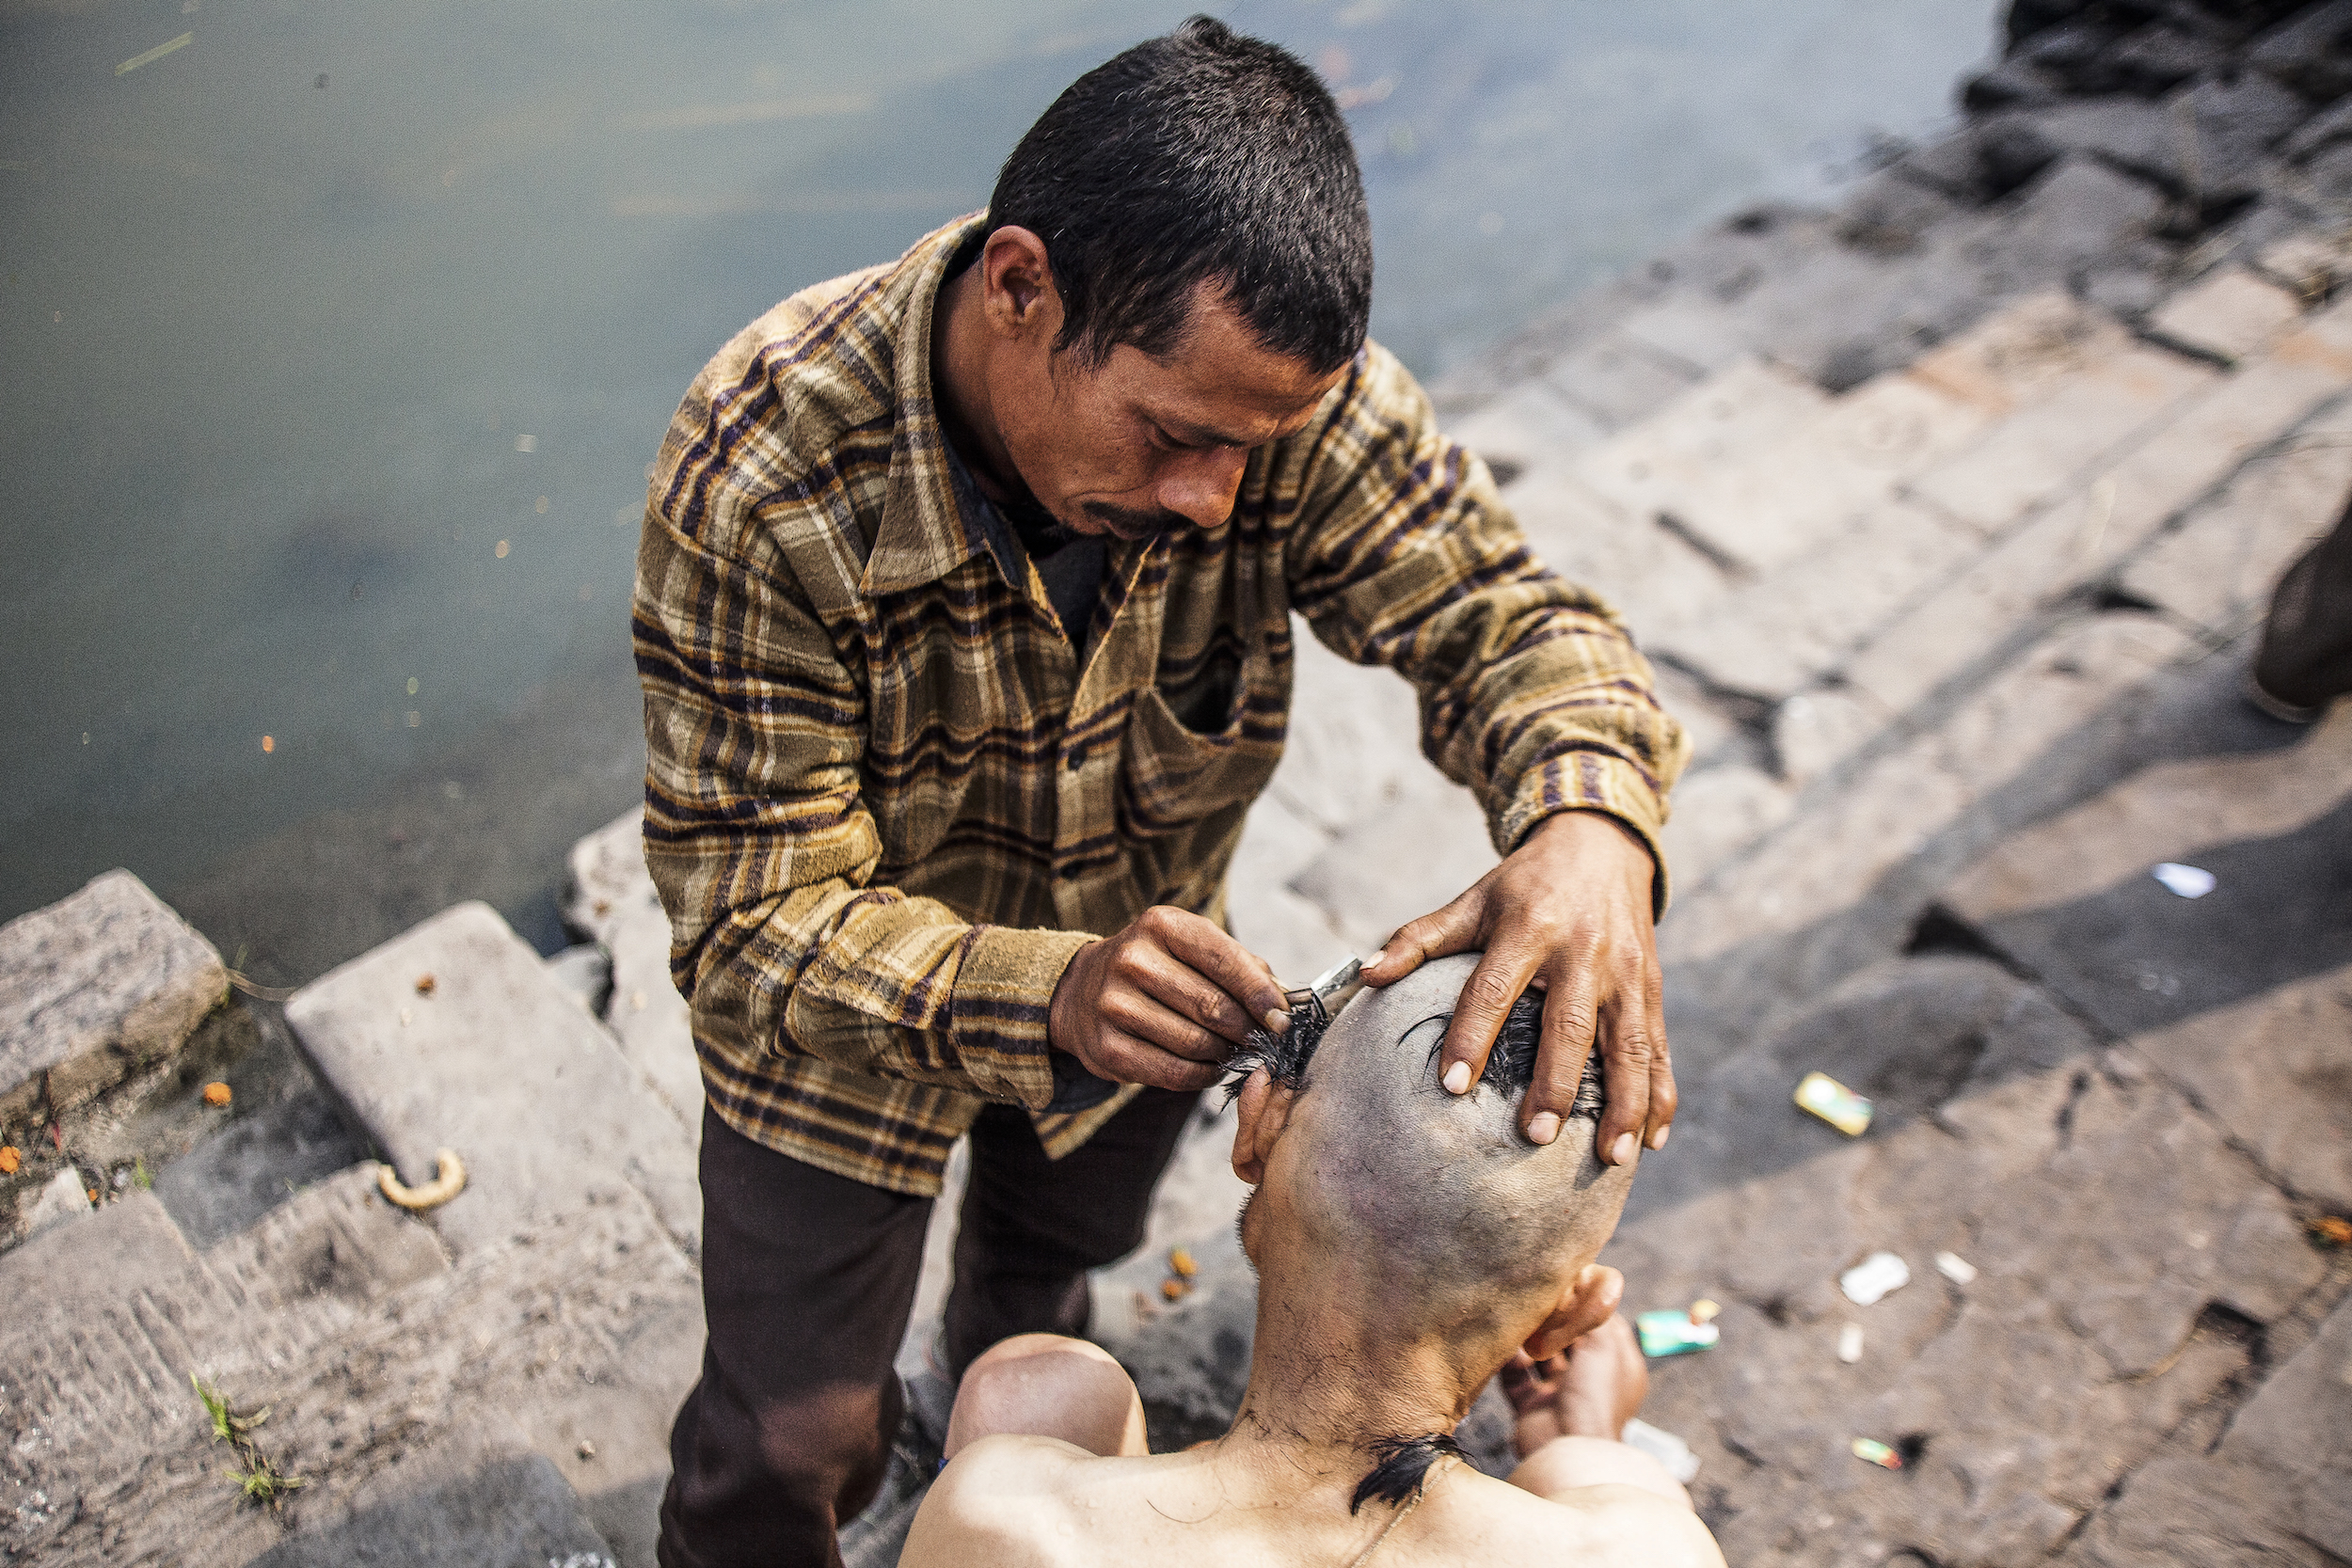 A barber shaves off a man's hair after the cremation of his father in a ritual known as Tonsure—a symbolic offering to the gods, that pays respect to the departed soul.